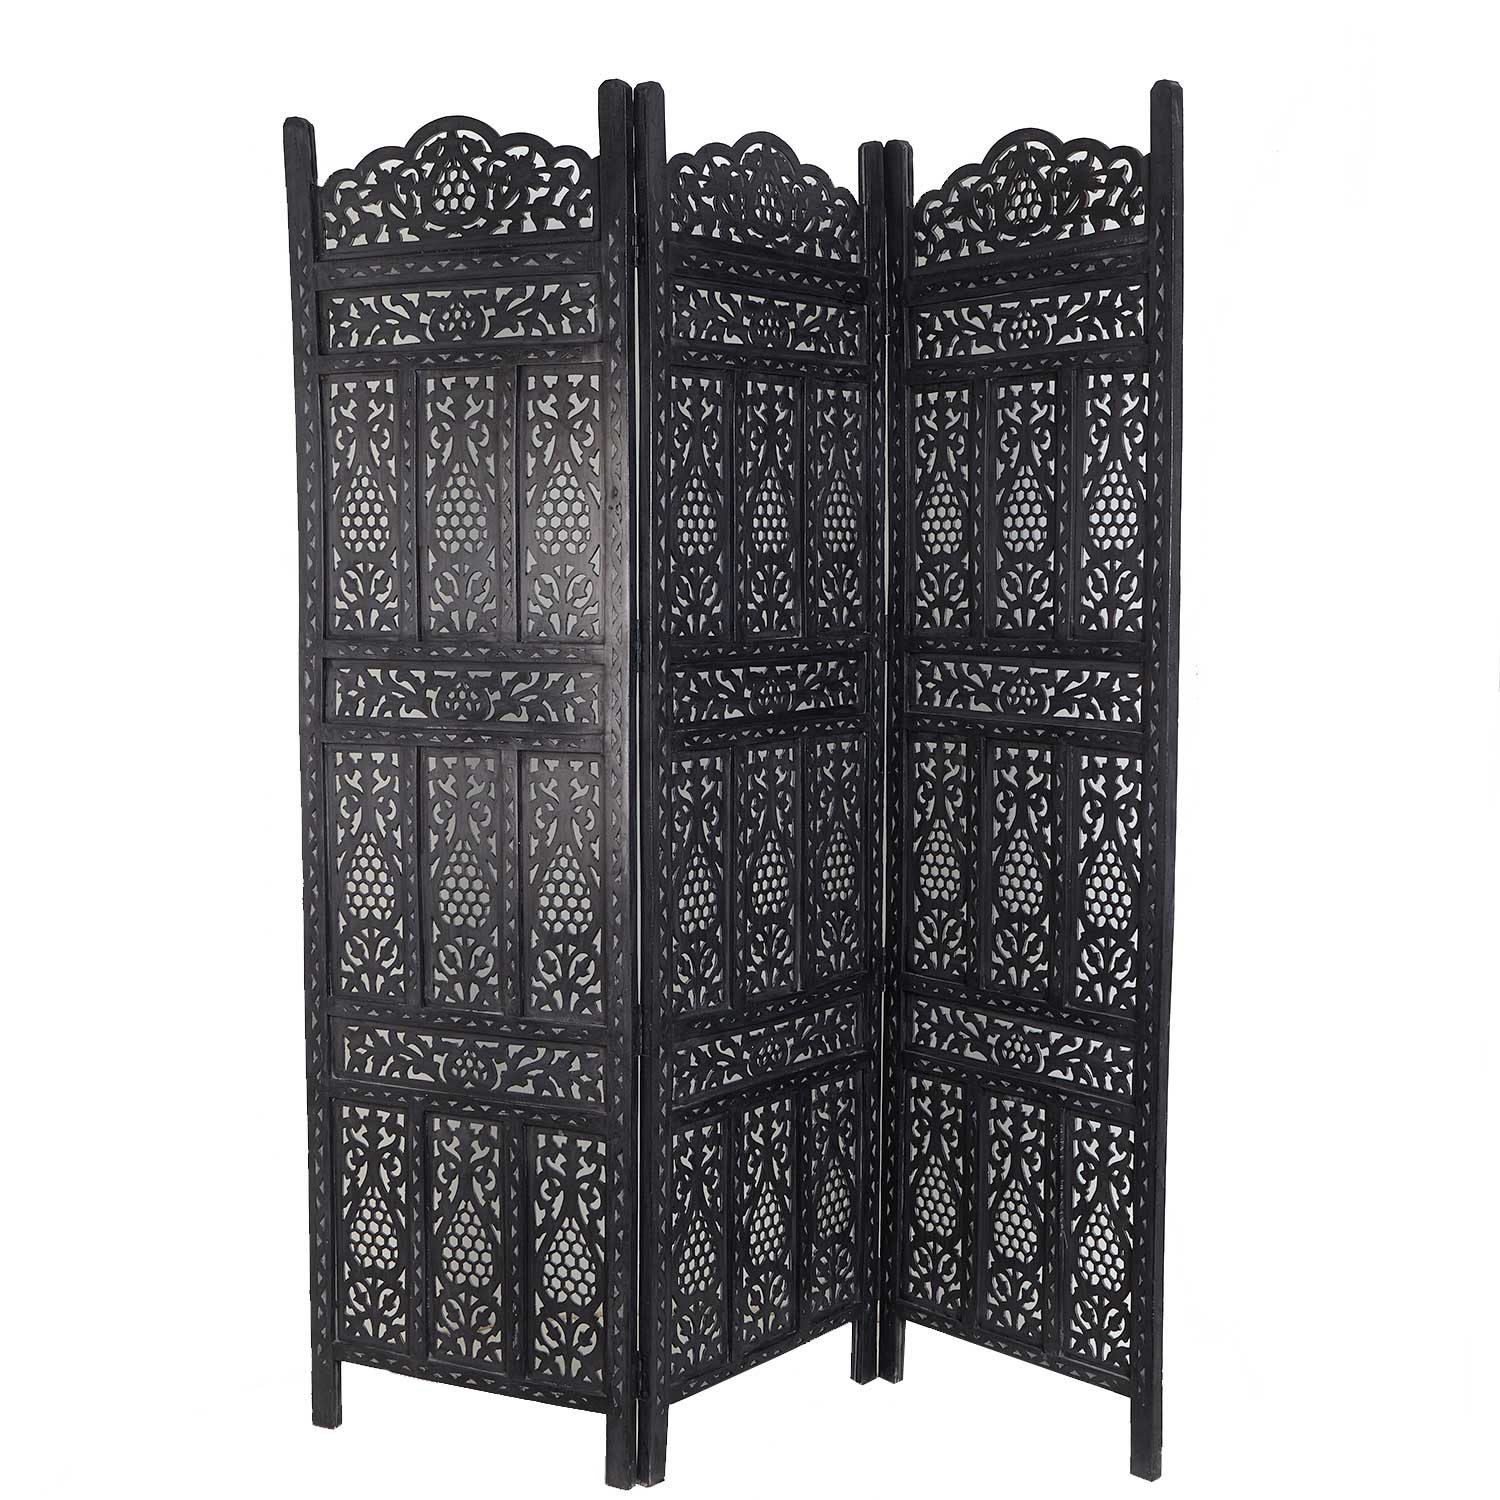 orient holz paravent alqamar bei ihrem orient shop casa moro. Black Bedroom Furniture Sets. Home Design Ideas